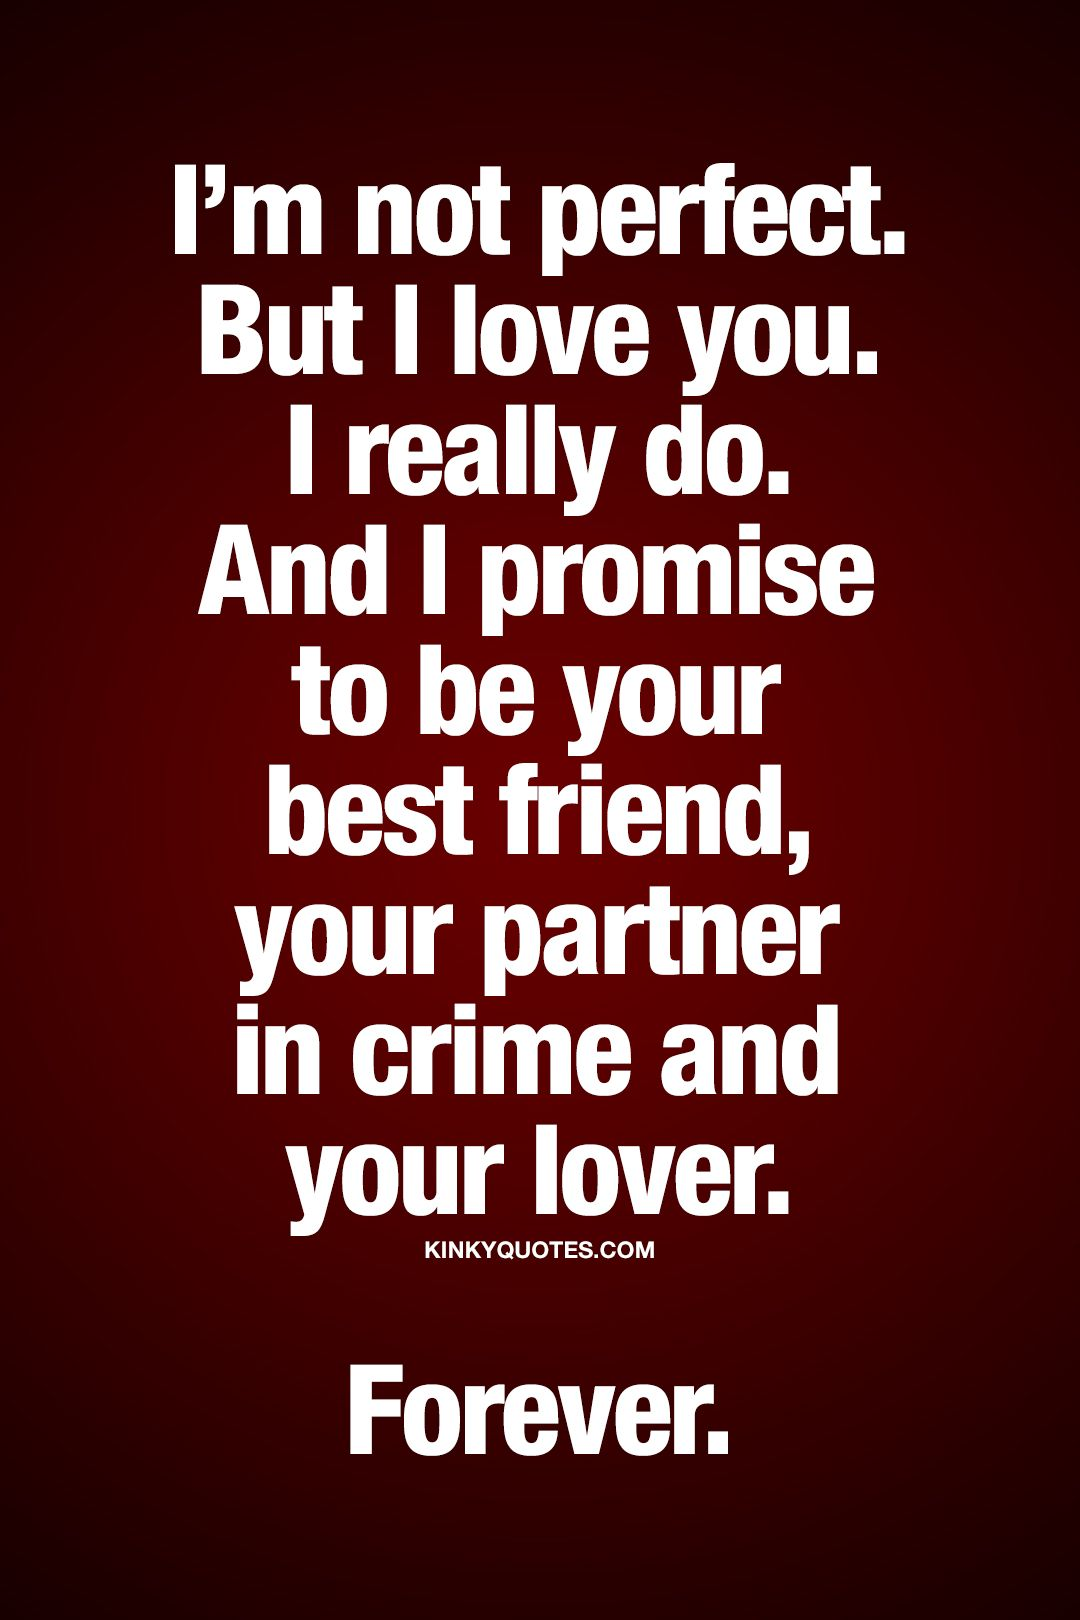 Dark Crime Love You Friend Pic Love You Friendship Quotes Your A Forever Relationship Can Be Yours Relationship Crime But I Love I Really I Promise To Be Your Yourpartner inspiration Love You Friend